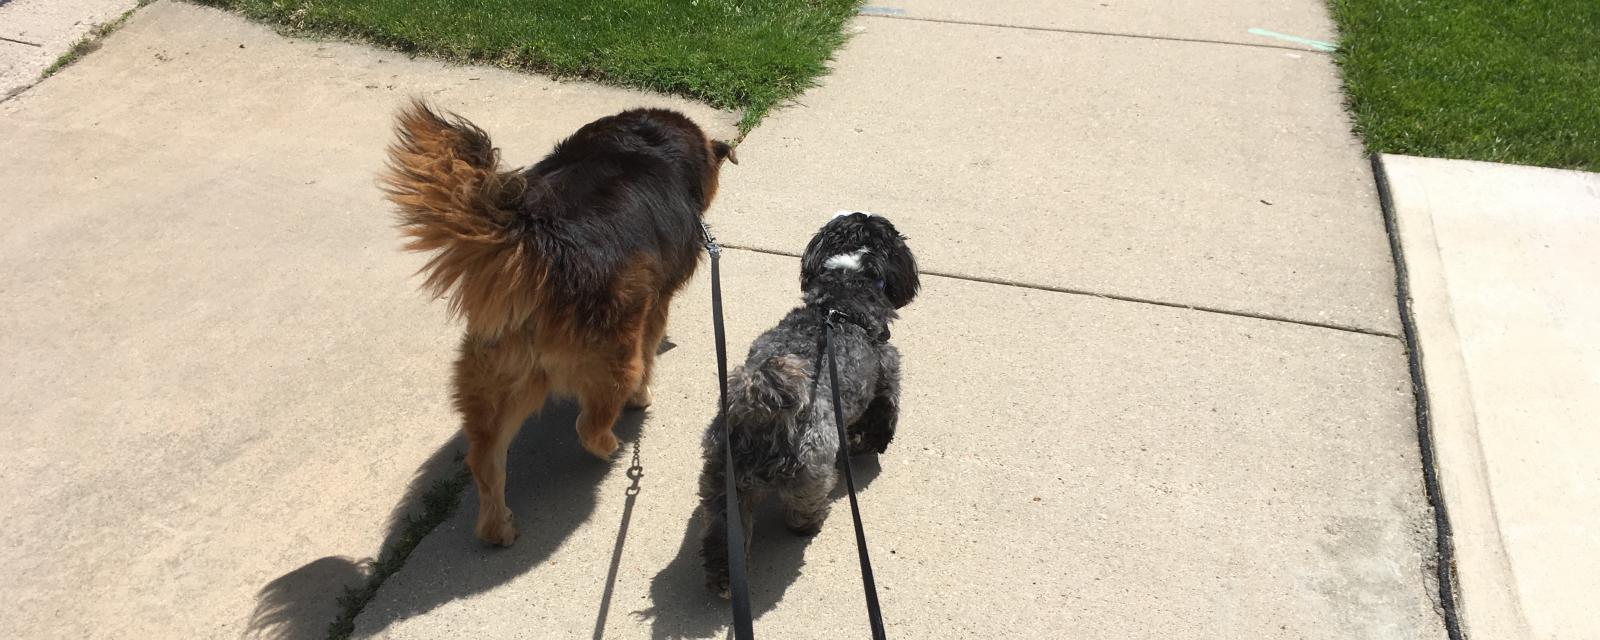 Dogs walking on a leash out for a walk